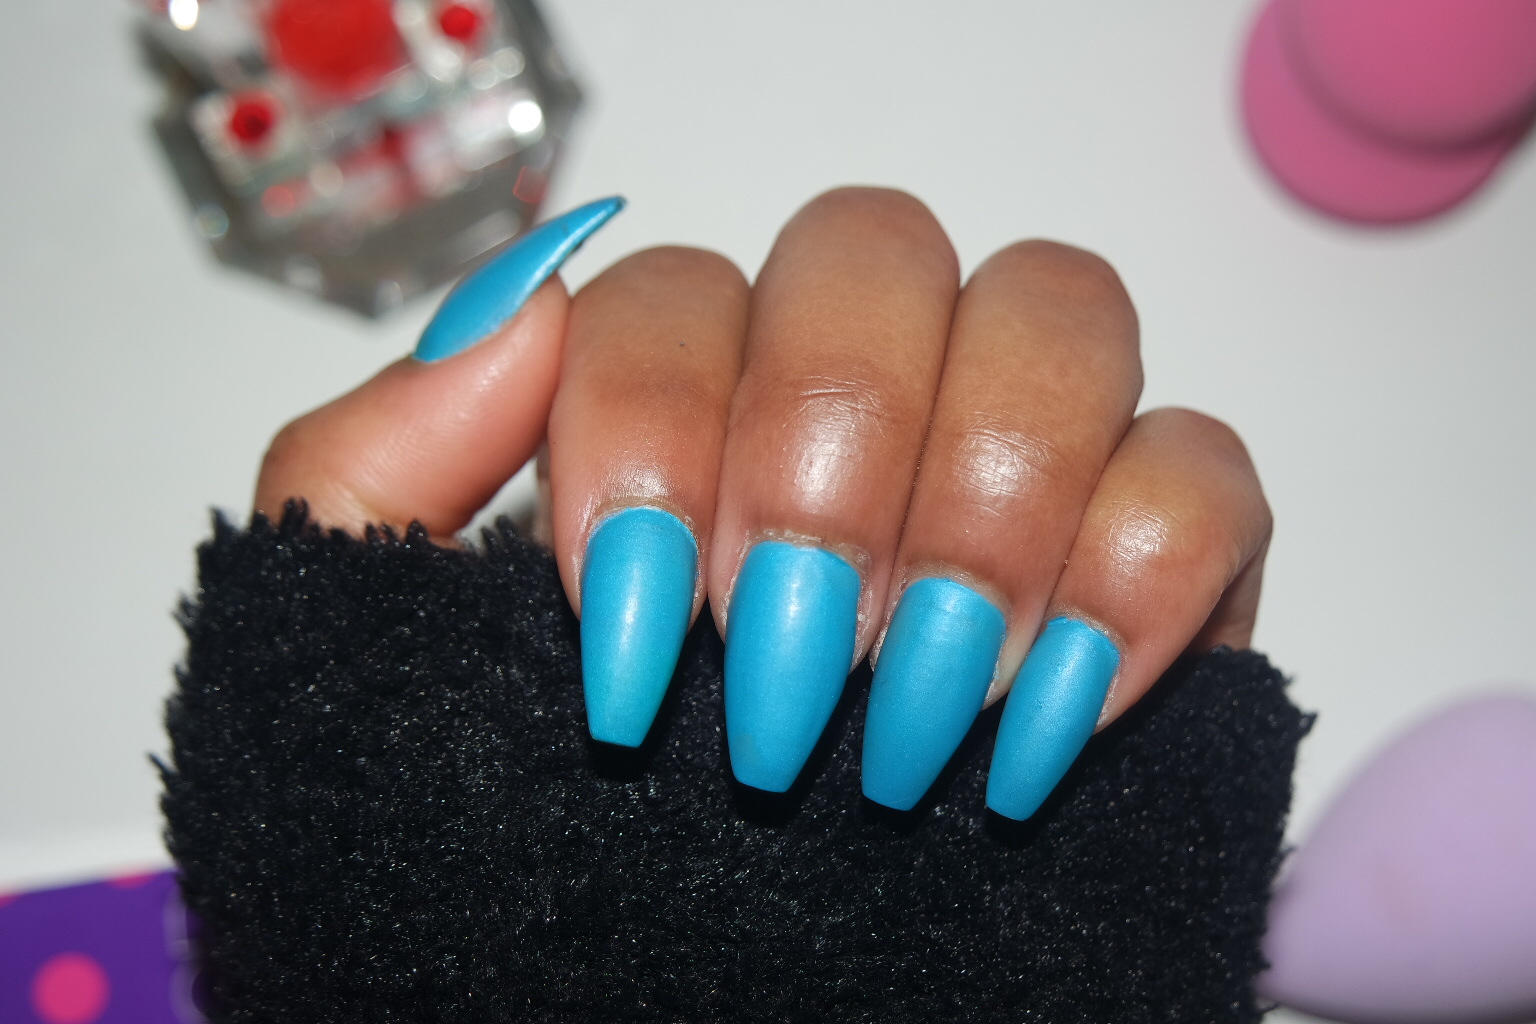 TASHIKA BAILEY: MATTE BLUE COFFIN NAILS